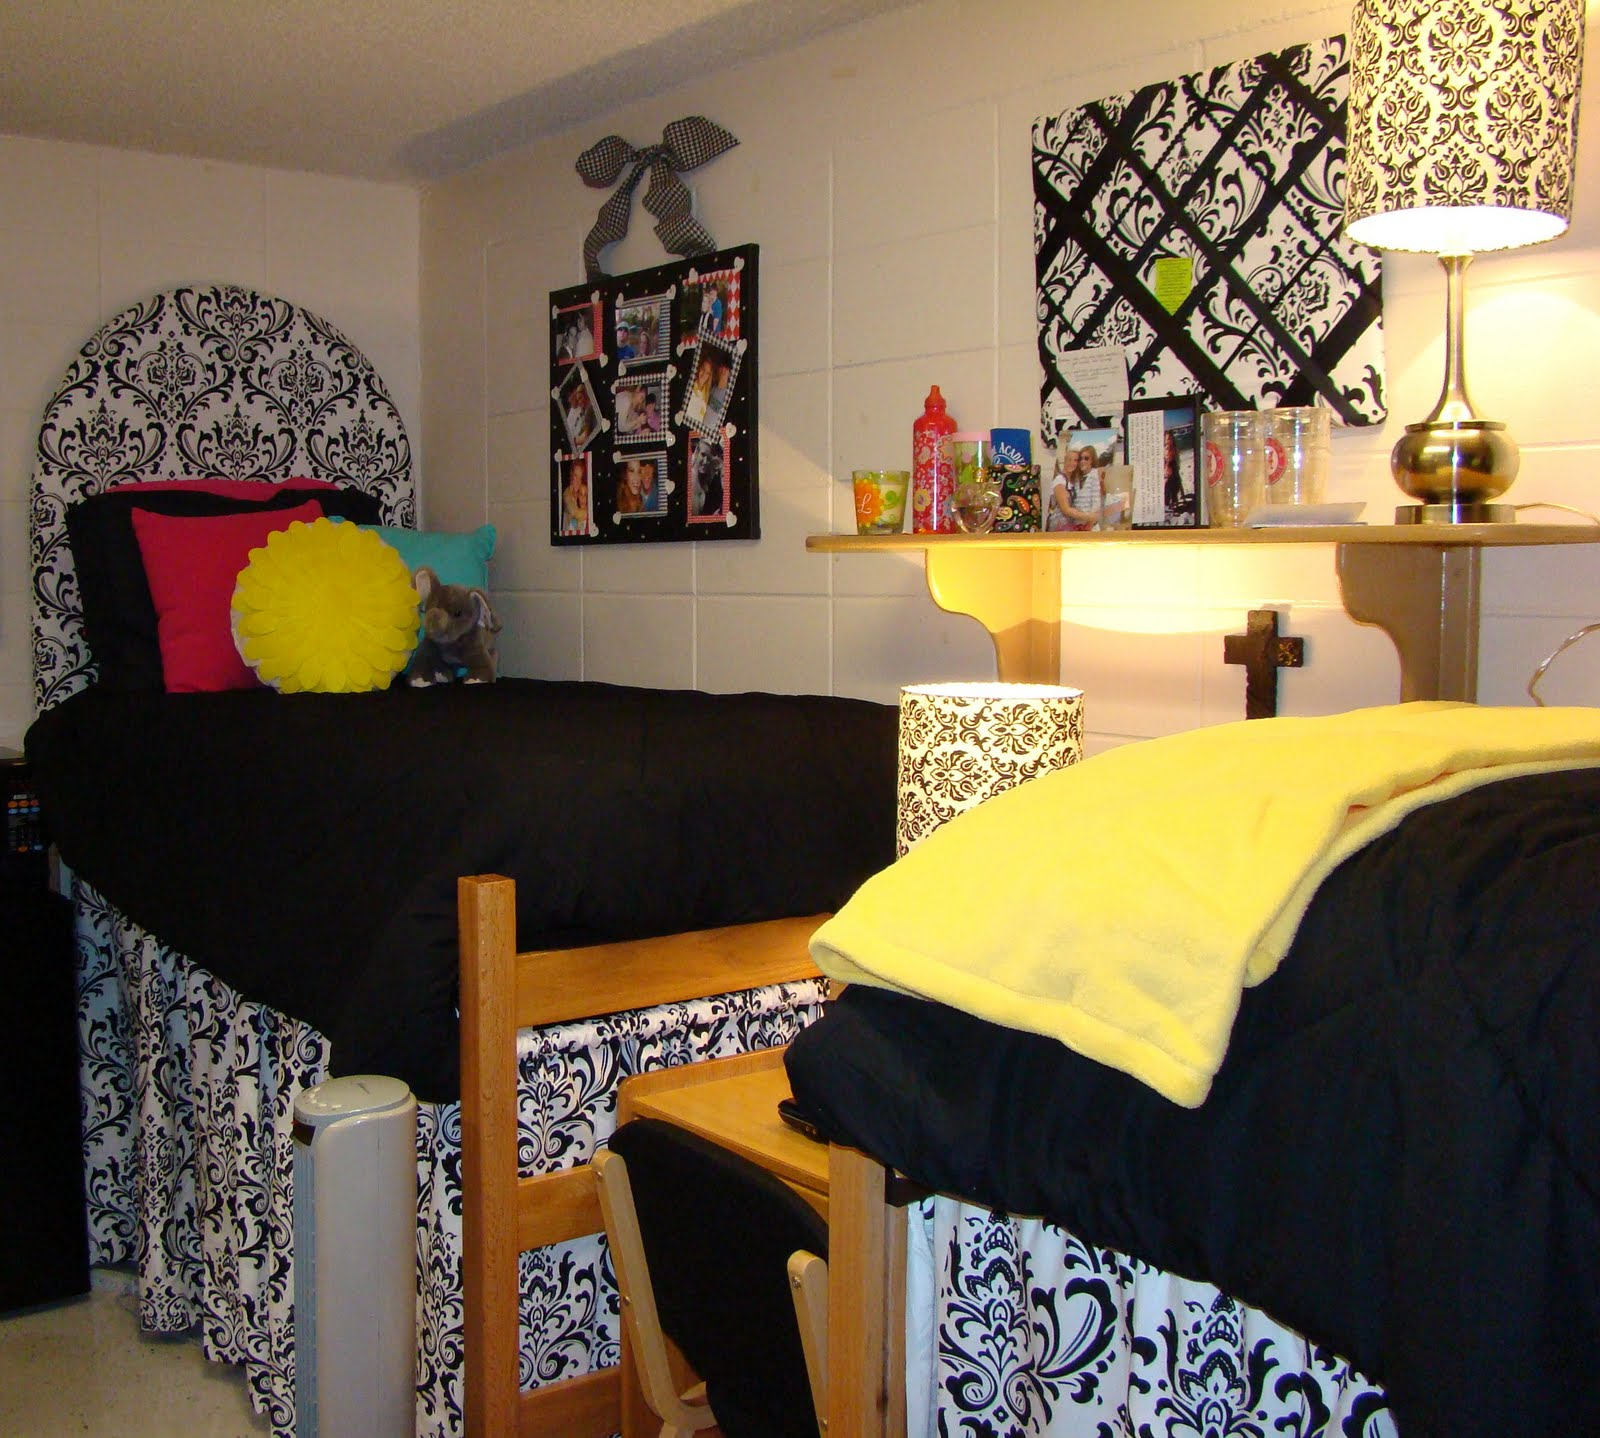 Doodlebug designs mg dorm room upholstered headboard - College room decor ideas ...